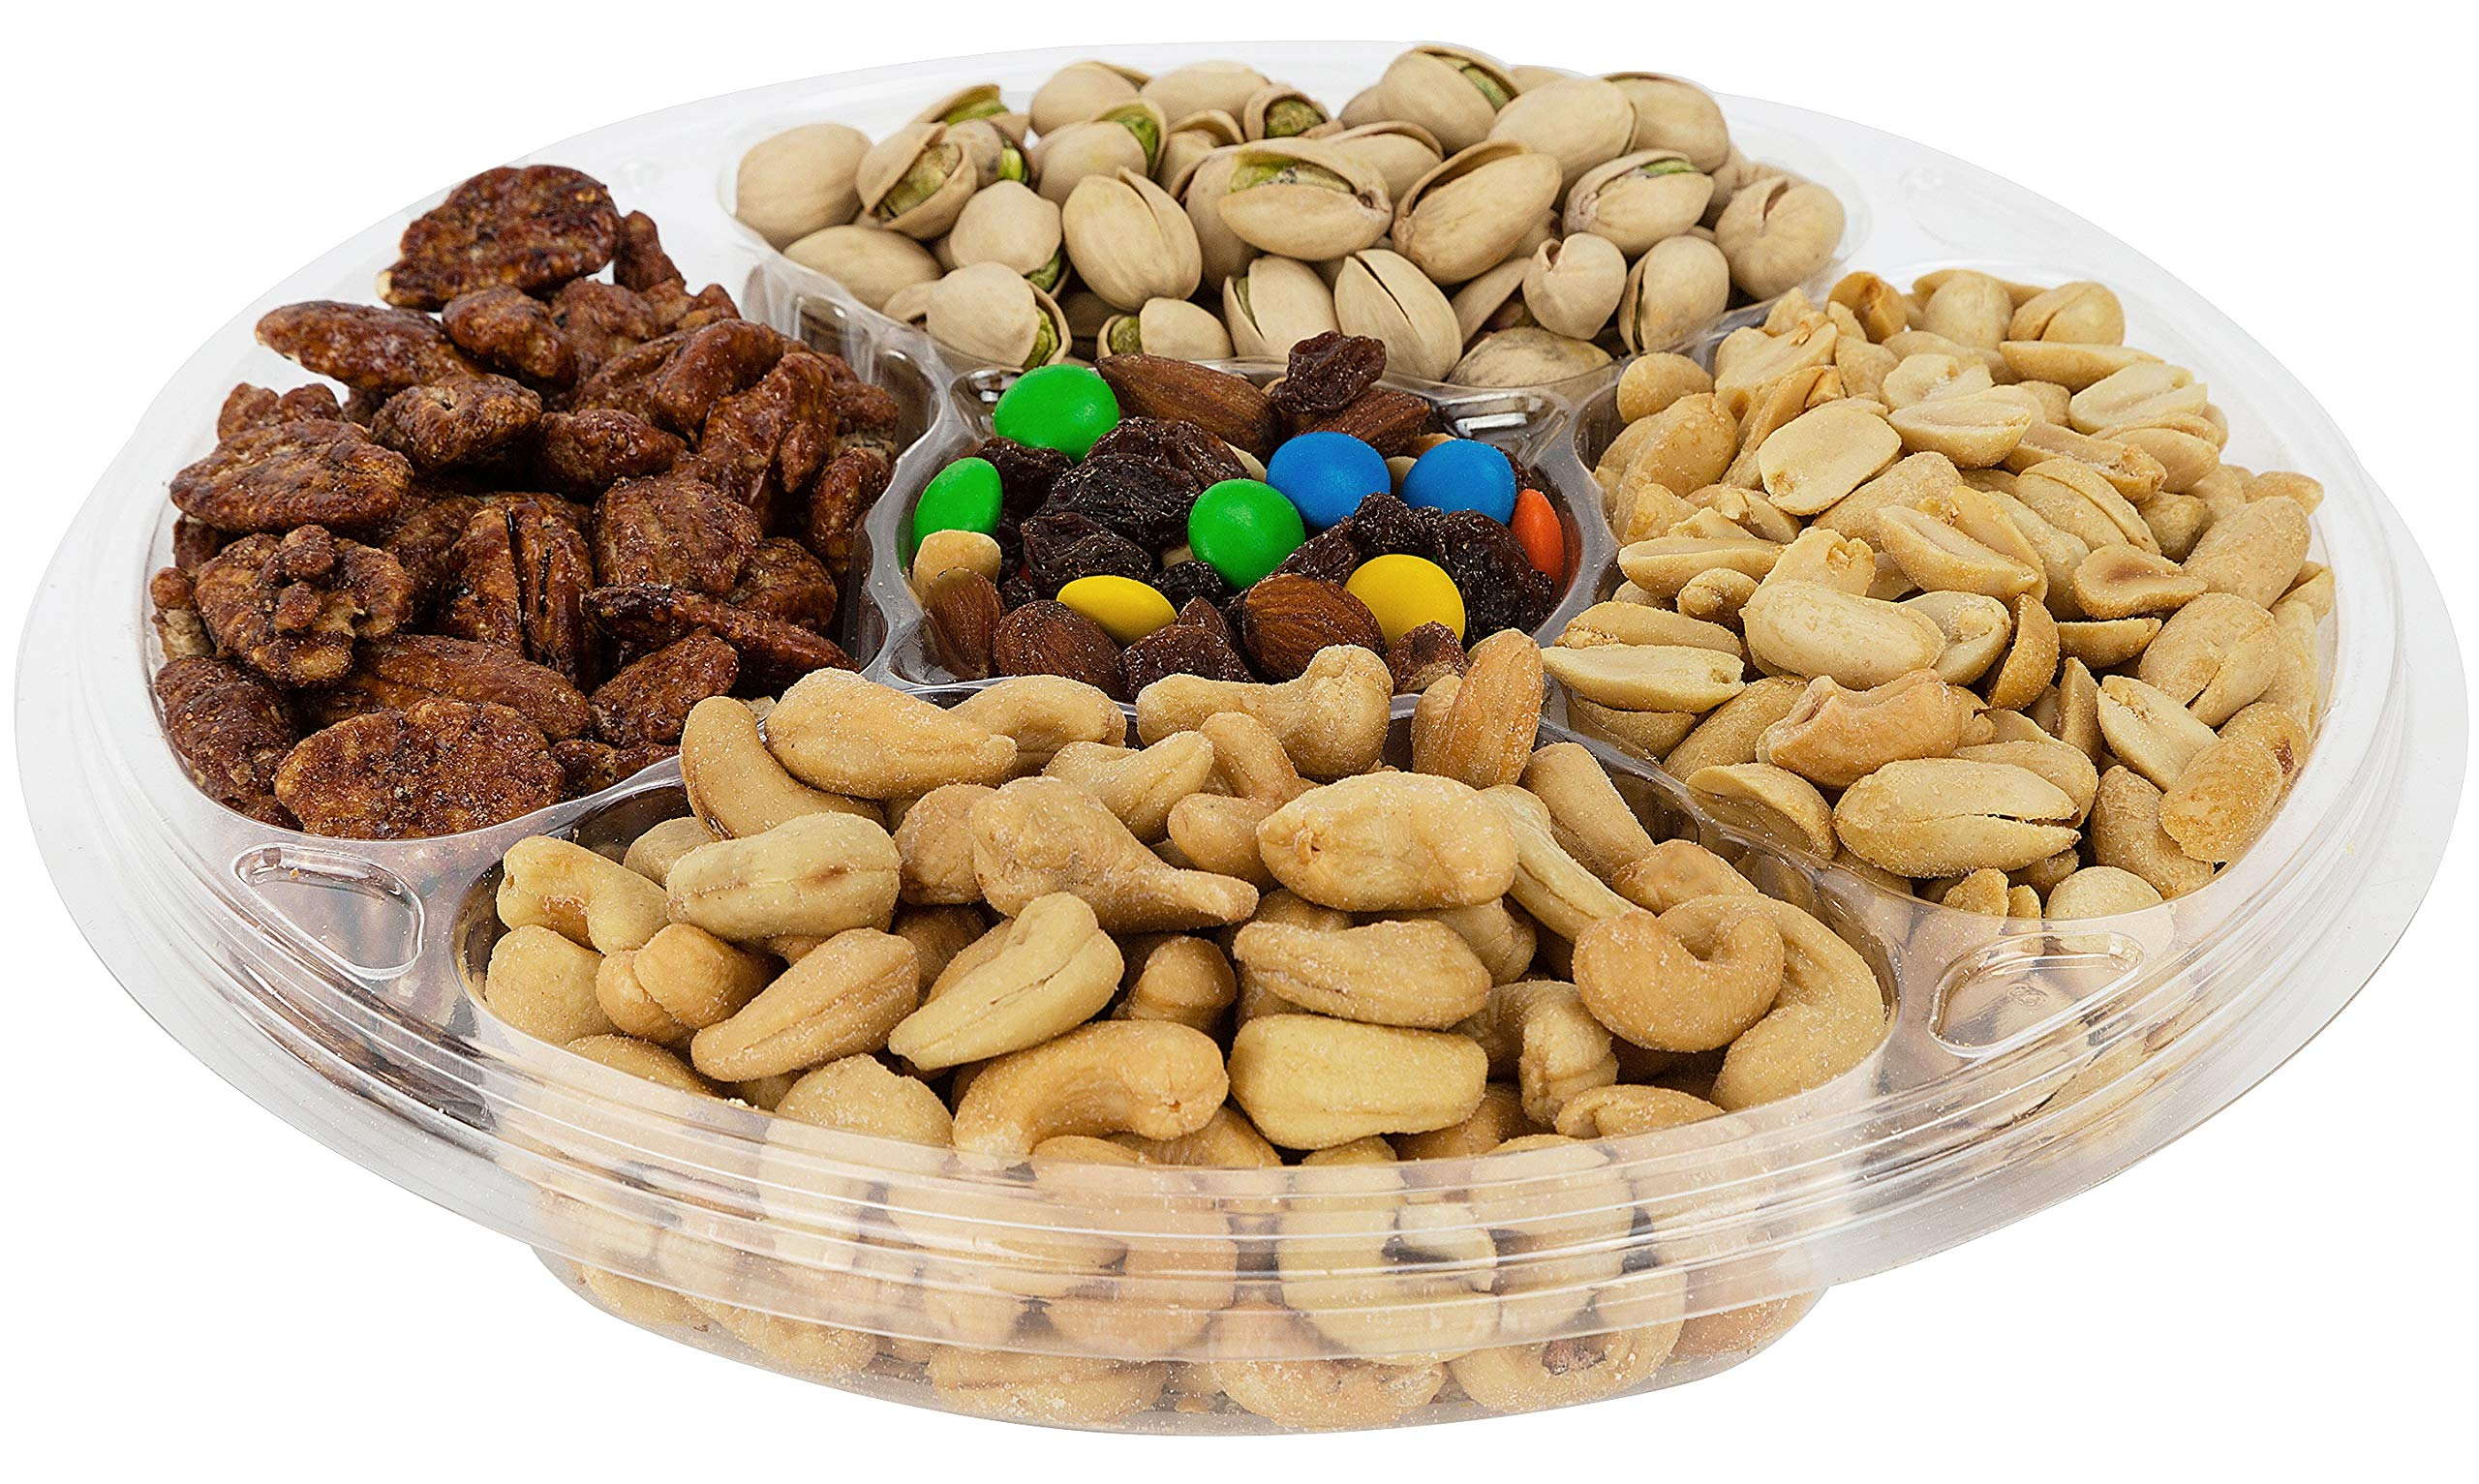 Choconuts Assorted Fresh Roasted Nut Gift Basket, Five Sectional Over 2 LB Gourmet Nut Tray, Great All Time Healthy Gift Box for Fathers Day, Get Well Gift, Sympathy Basket, Hostess Gift